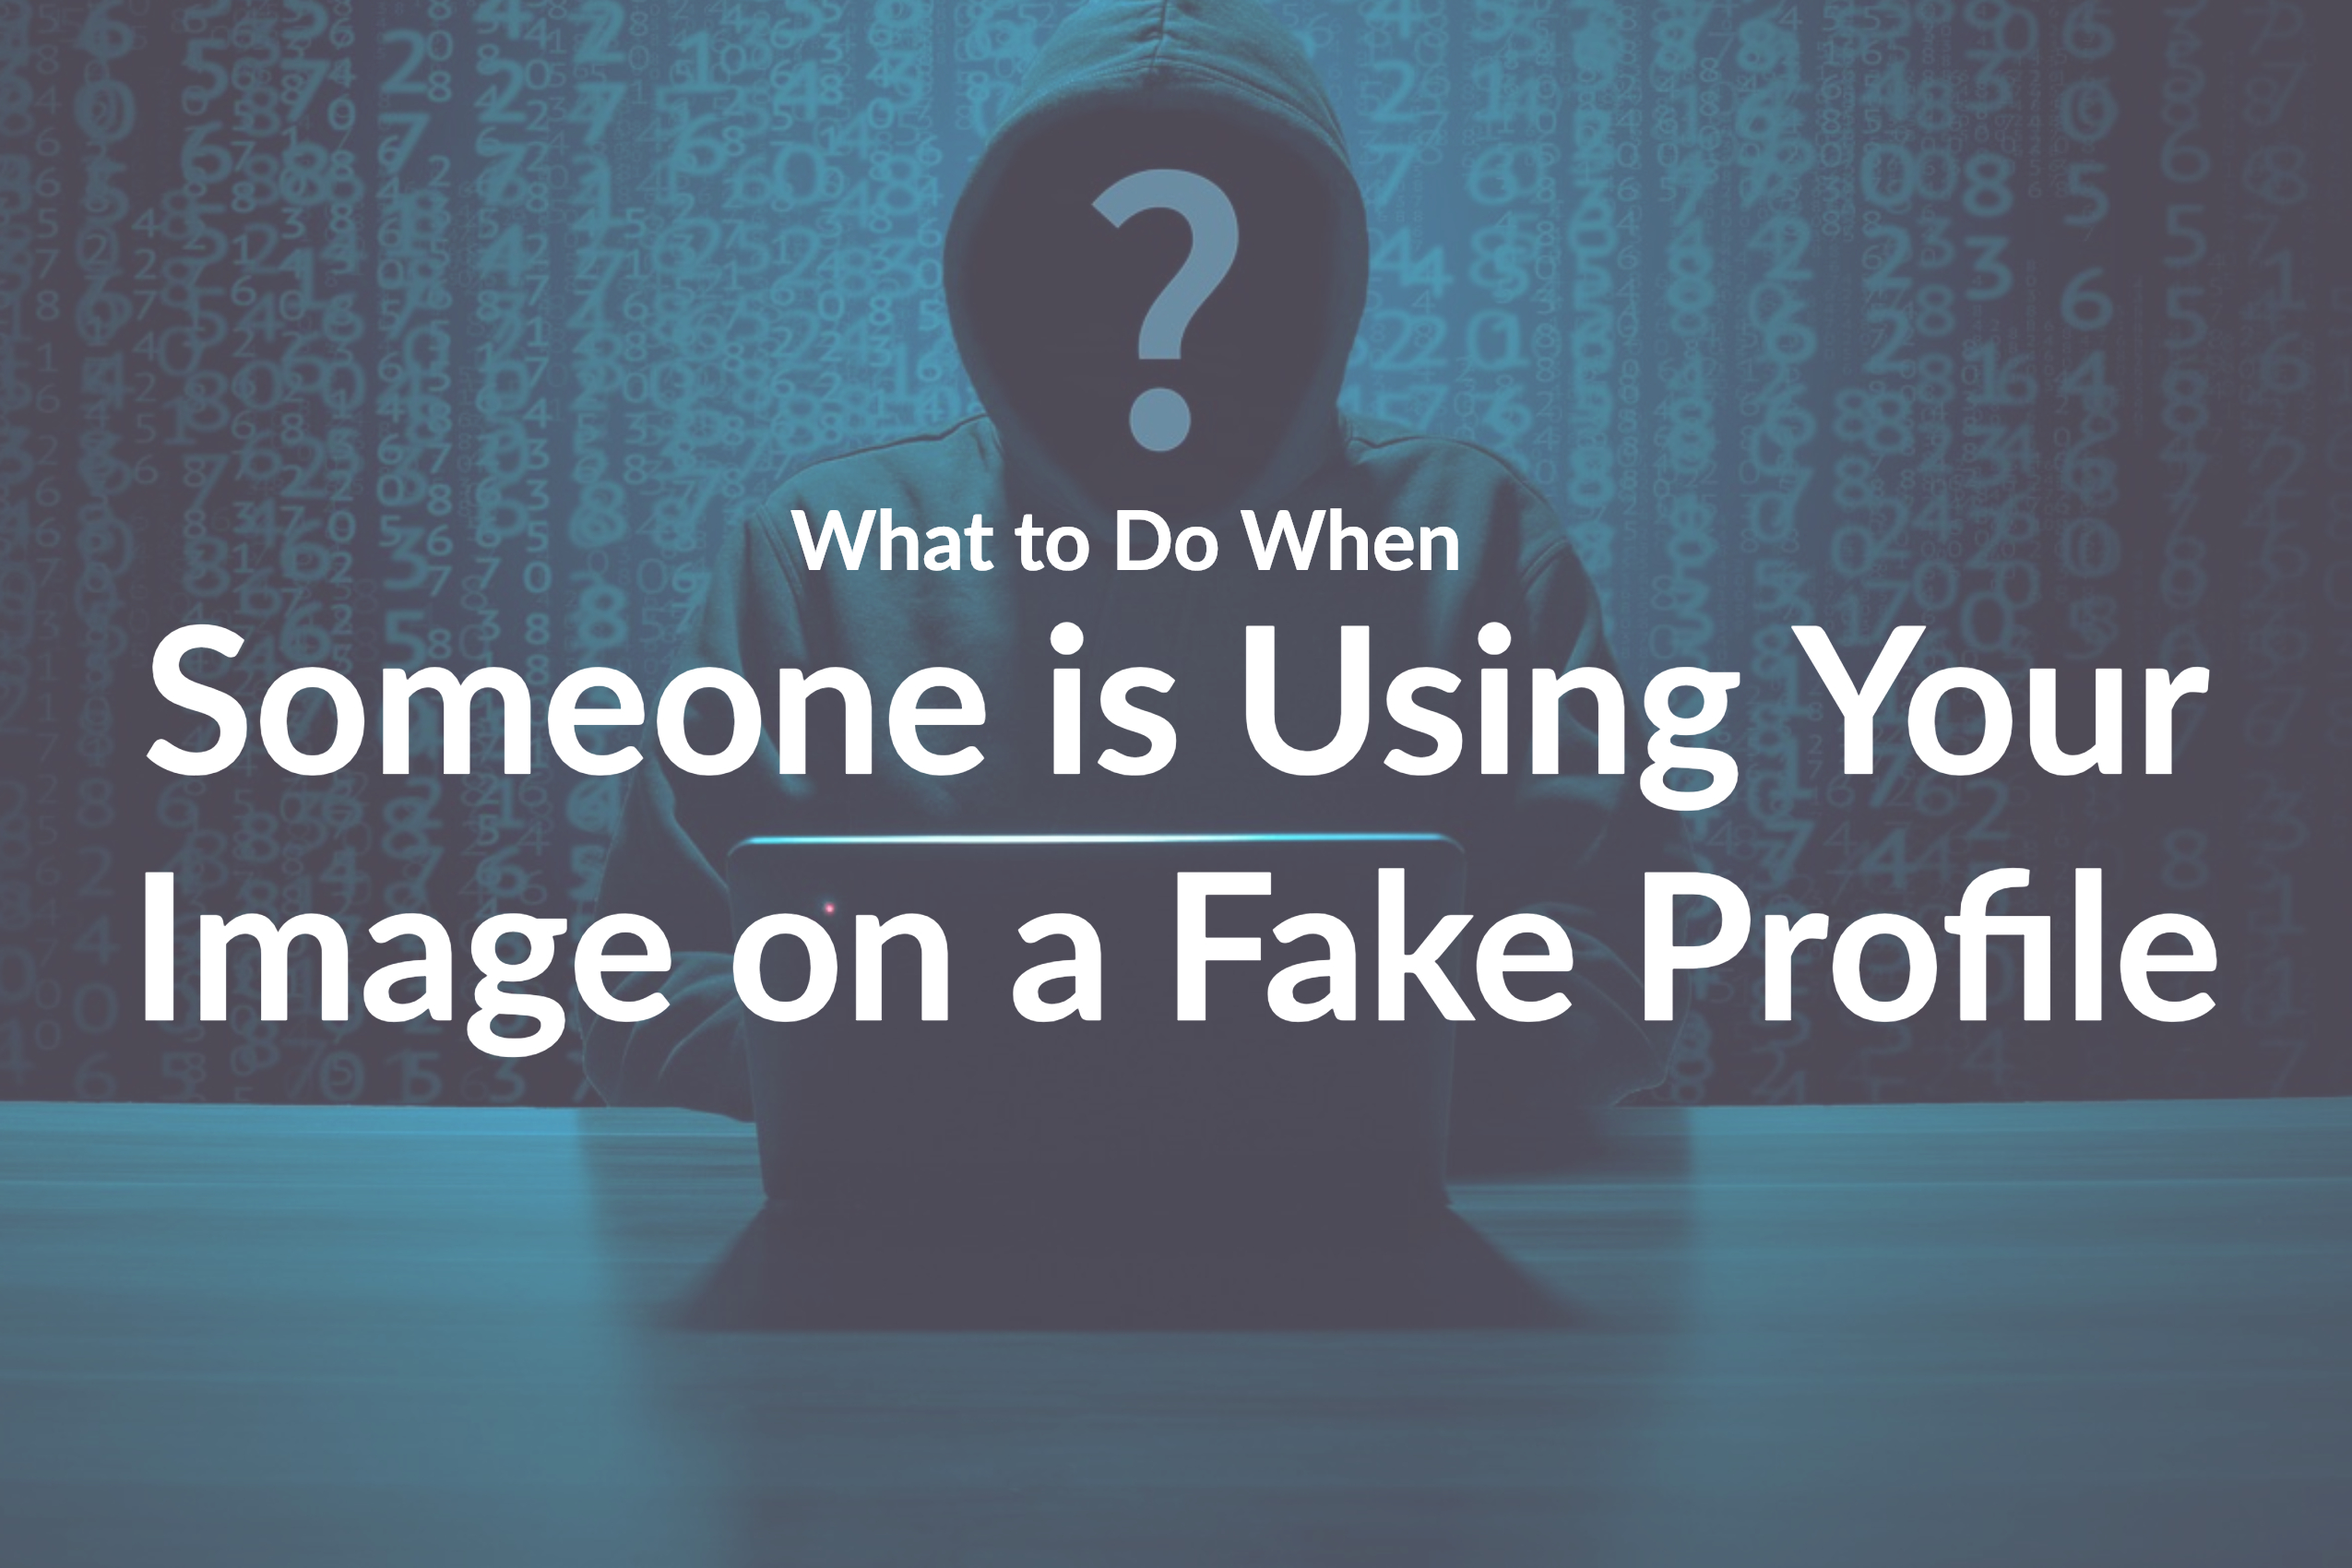 What to Do When Someone is Using Your Image on a Fake Profile